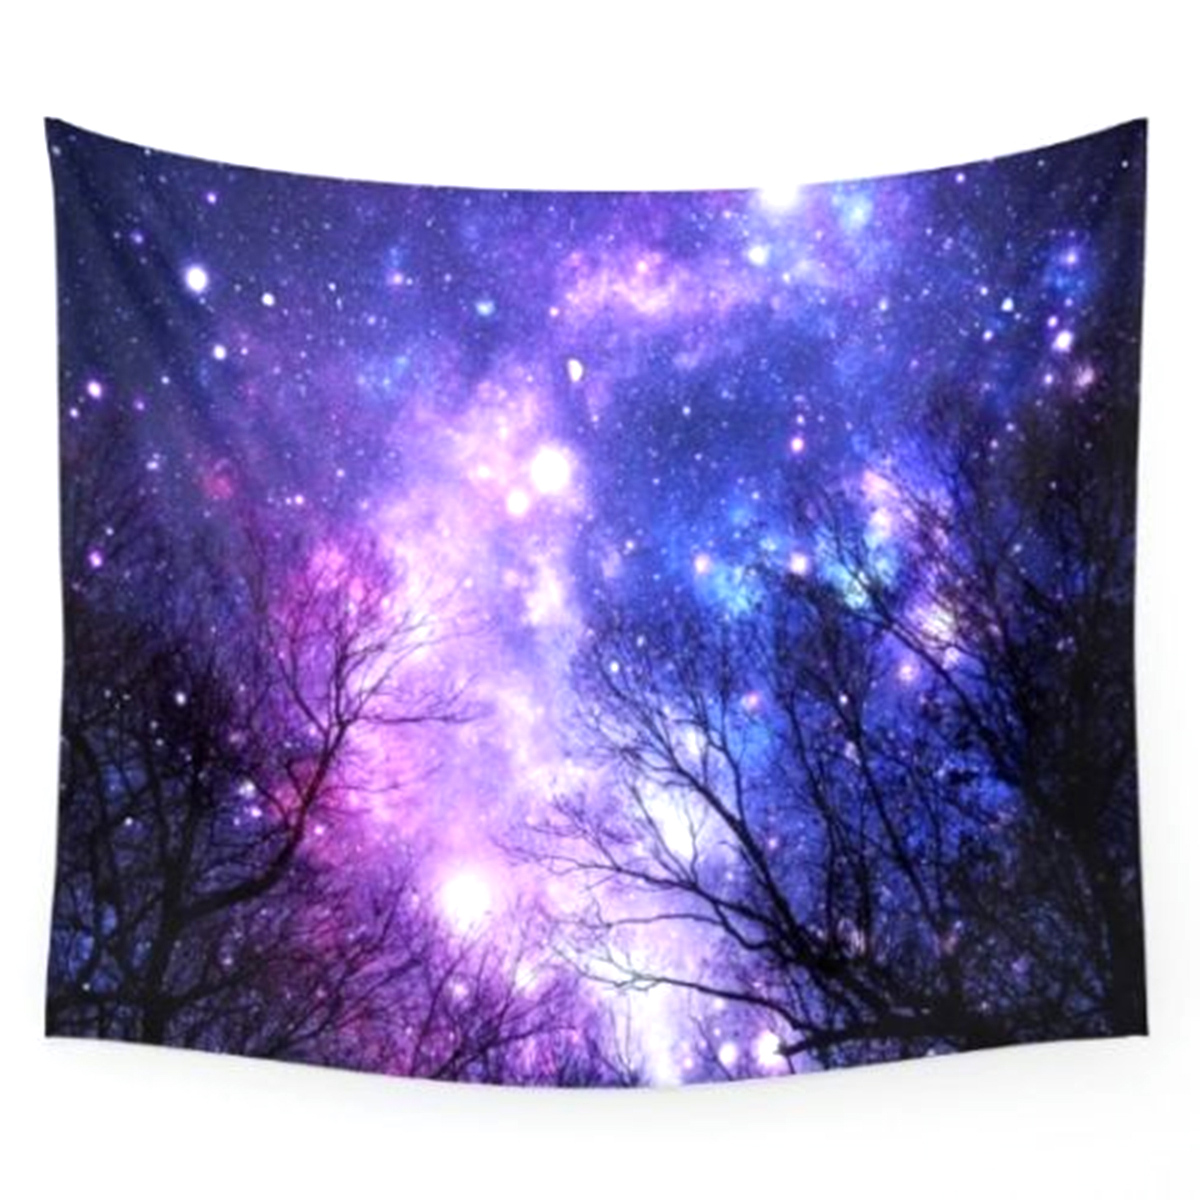 60''x50''Galaxy Hanging Wall Hippie Retro Tapestry Home Decor Yoga Beach Towel Today's Special Offer by